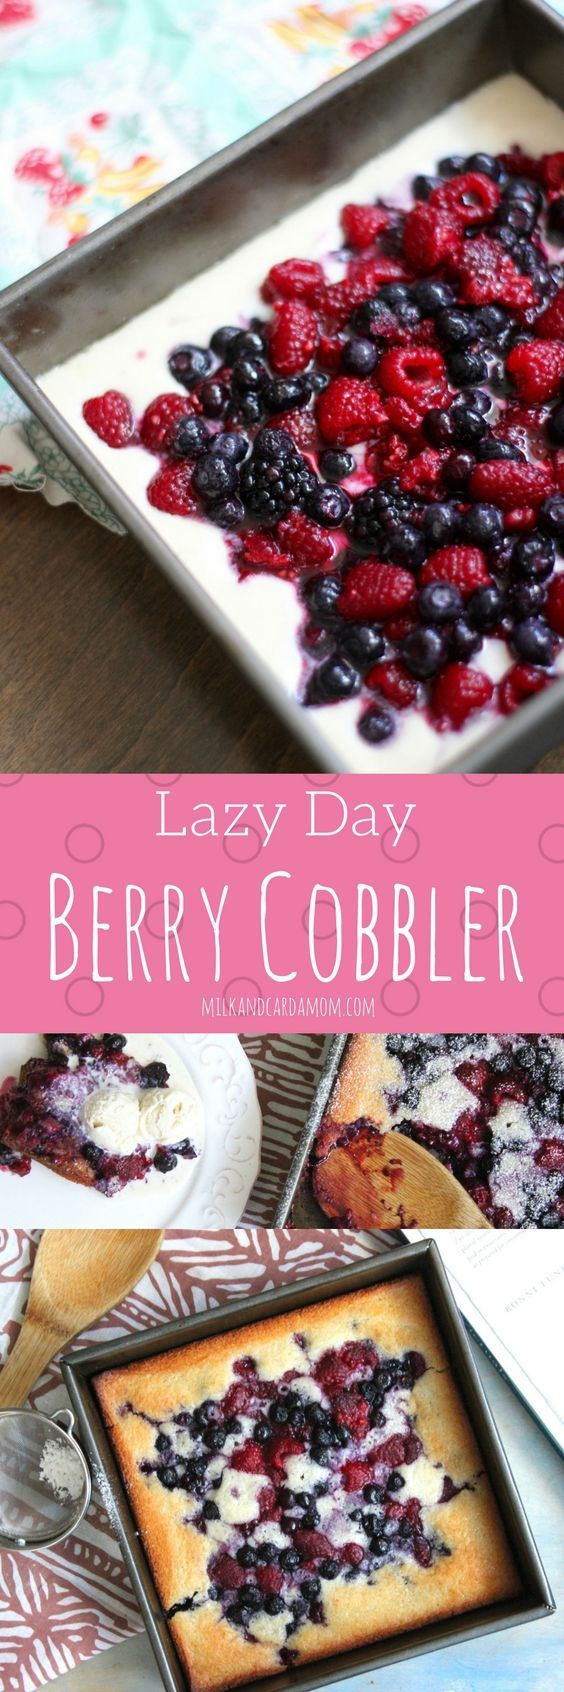 The easiest and BEST berry cobbler recipe! Takes only 15 minutes to put together!